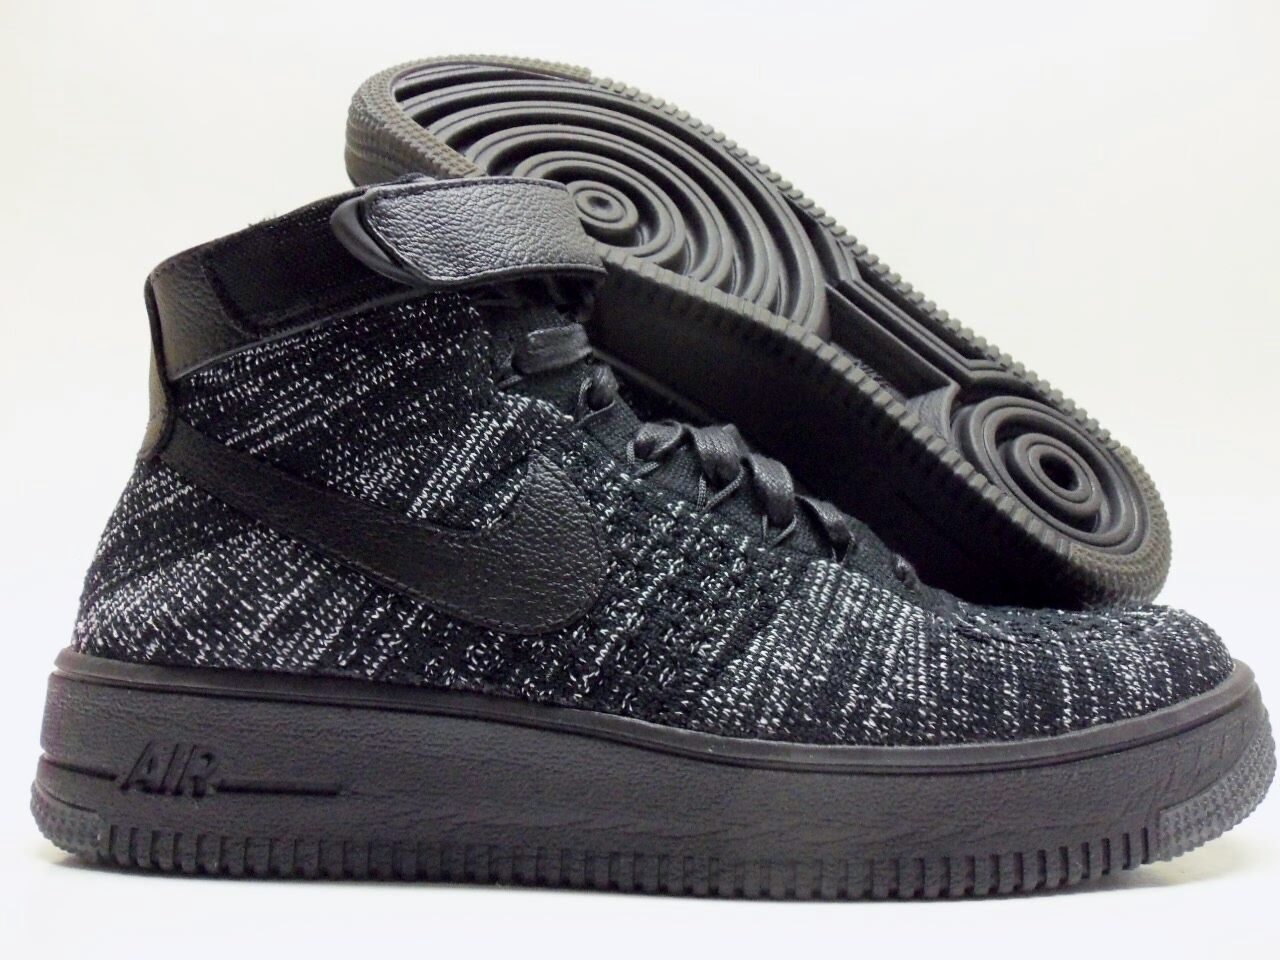 NIKE AF1 FLYKNIT AIR FORCE 1 BLACK/BLACK-WHITE SIZE WOMEN'S 7 Price reduction Wild casual shoes